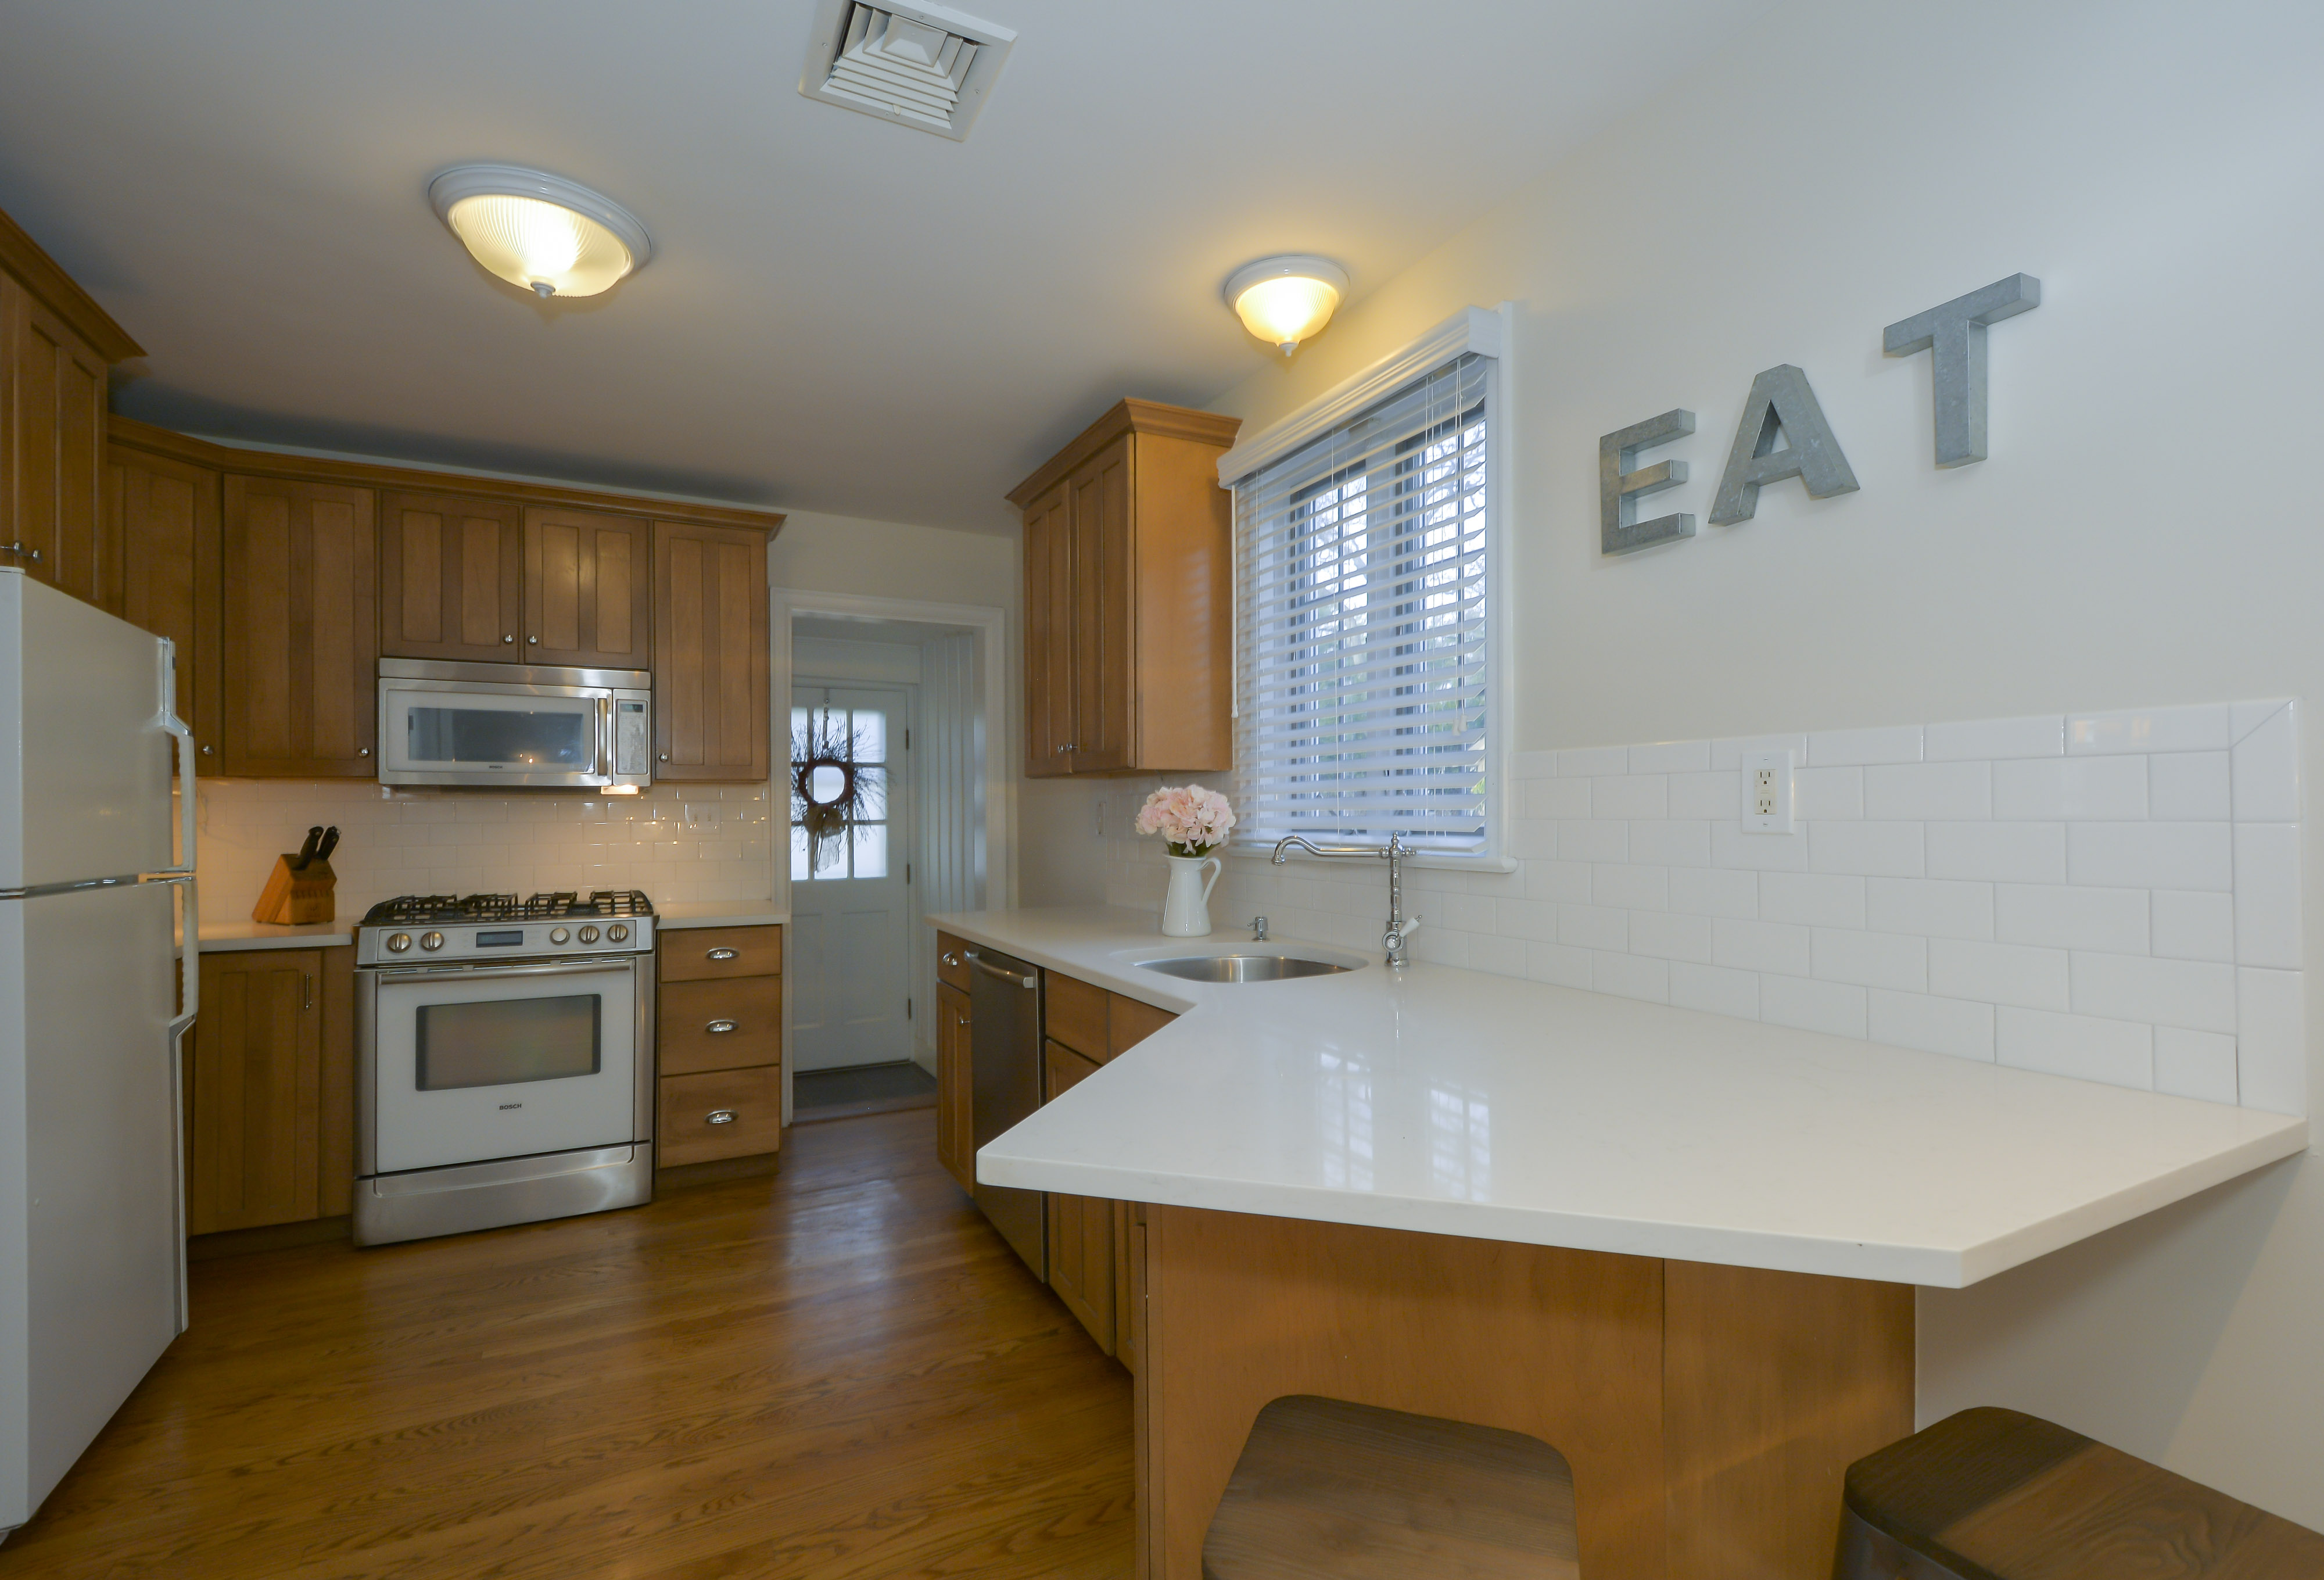 The kitchen often takes centre stage in home life, so it makes sense that according to the experts, upgrading your kitchen is where your funds should be focused if you're trying to get the best price for your house.